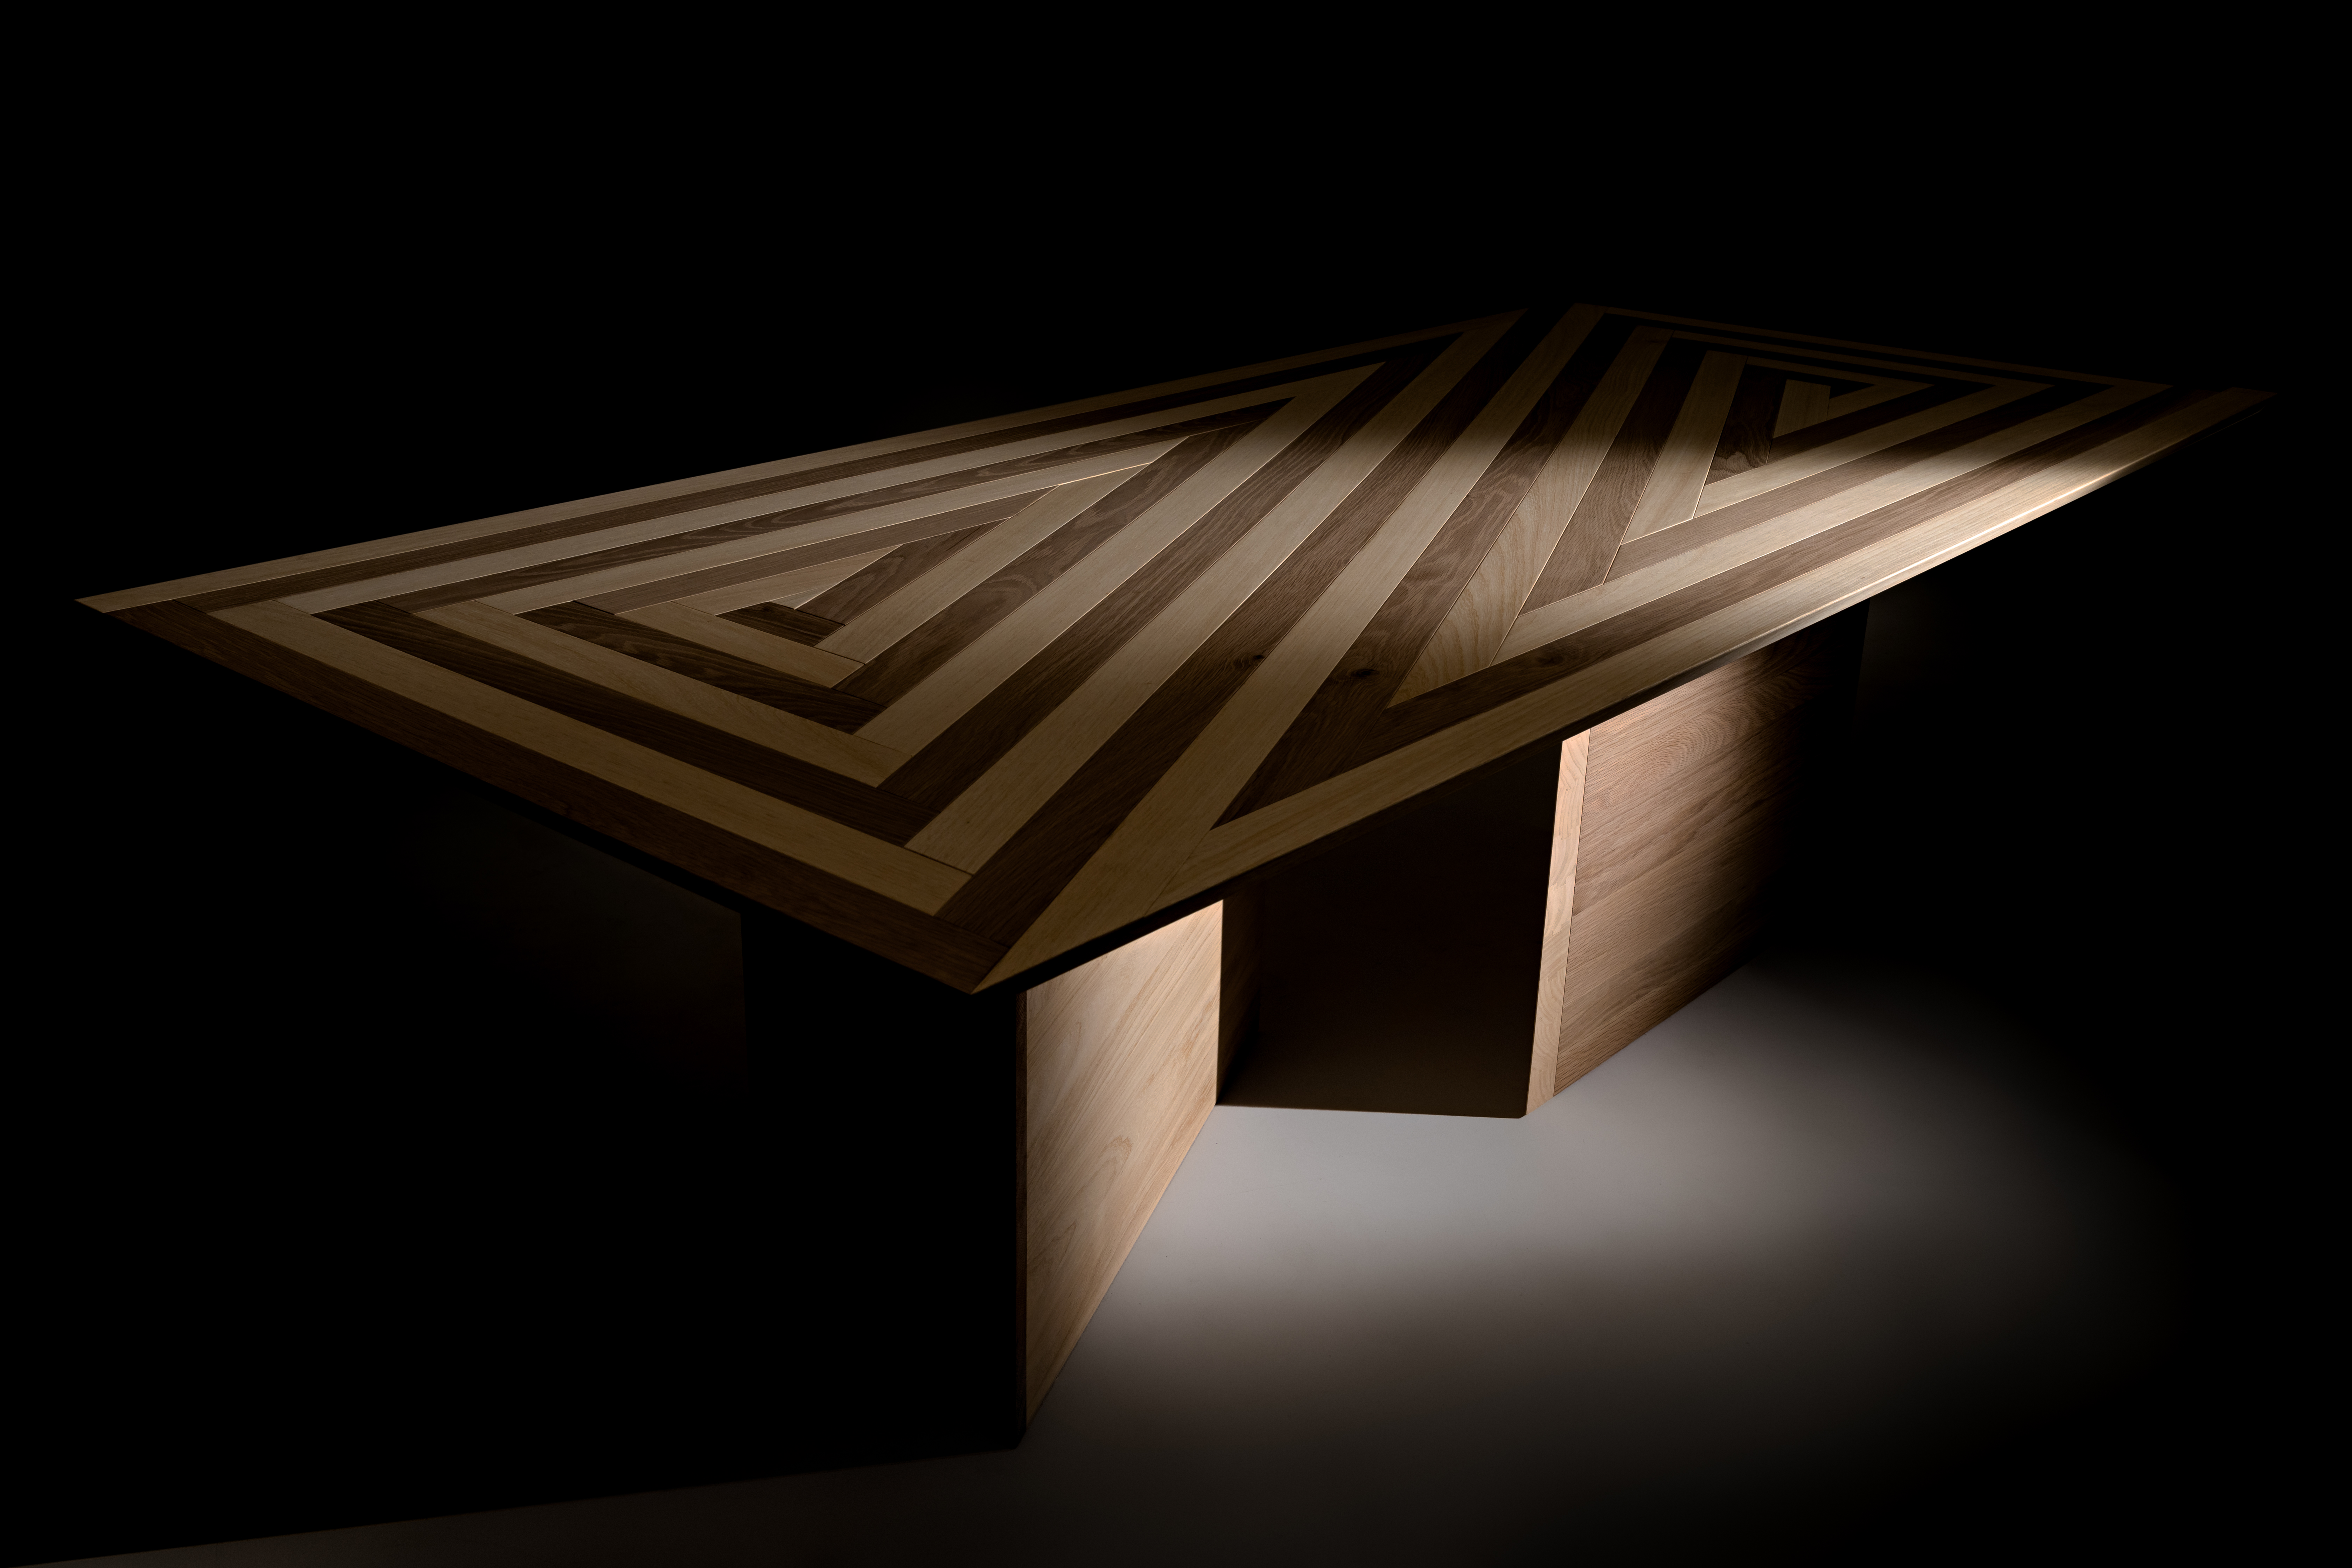 Y Dining Table - <p>Y Table, a bespoke, limited edition dining table. It celebrates diversity in design by assembling 250 hardwood slats of Cornish oak and Nigerian koto. The pieces are self-similar and yet all individually different, cut by CAD/CAM technologies and manually assembled interlocking one another via dove tail connection joints. The many discreet elements come together producing an elegant and yet functional ensemble for a unique dining piece. The design is inspired by and follows the principle of reciprocal frames, a class of self-supporting structure where every piece relies on each other requiring no centre support. Y Table fuses traditional joinery and digital fabrication and celebrate contemporary design at its best.</p>  | Matter of Stuff